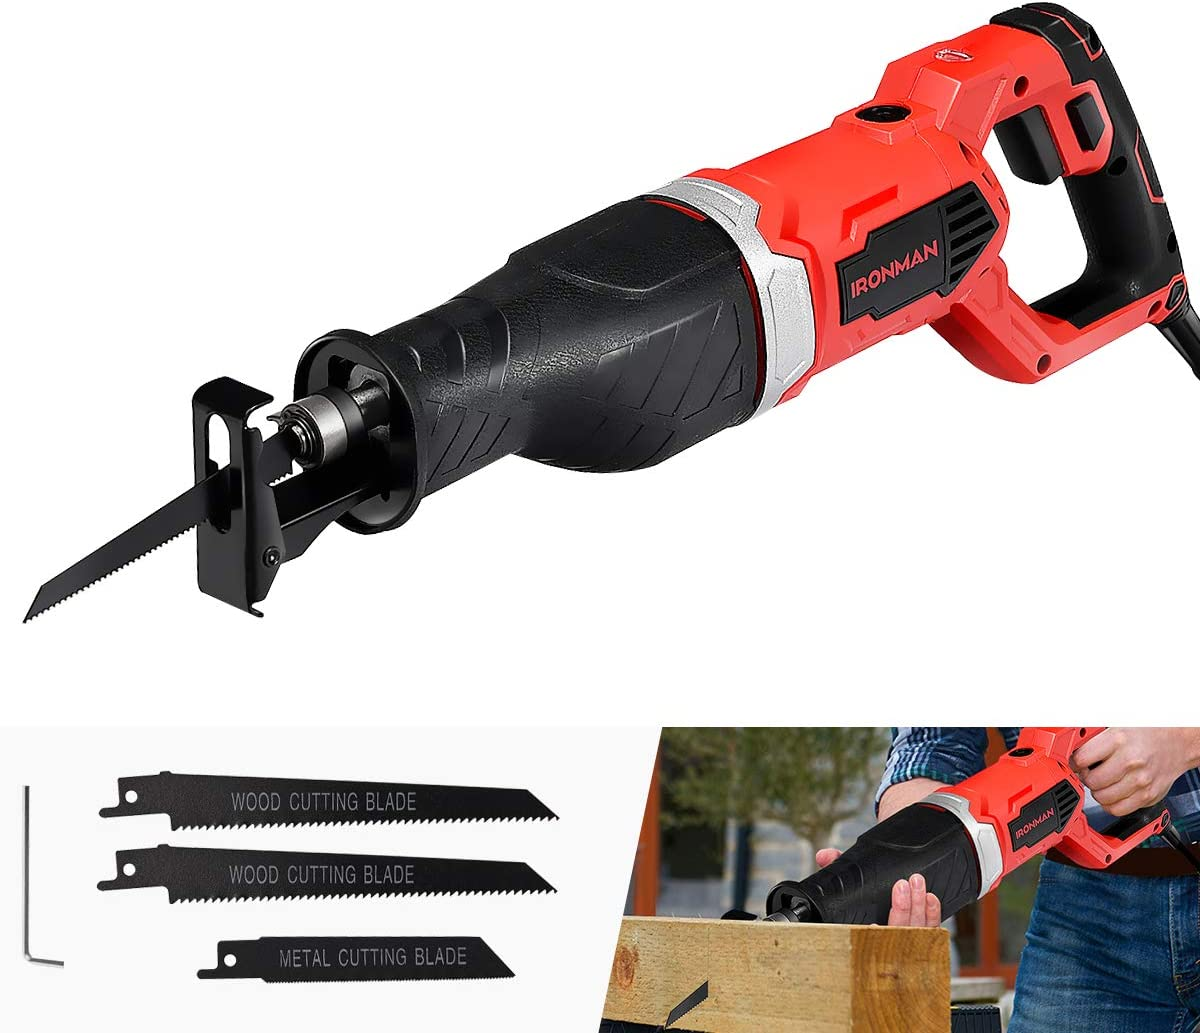 Goplus Reciprocating Saw, 9Amp 1-1 8 Stroke Length, 2500SPM Variable Speed and Trigger Switch with 3 Saw Blades for Wood and Metal Cutting, Electric Saw with Copper Wire Motor and Power Indicator